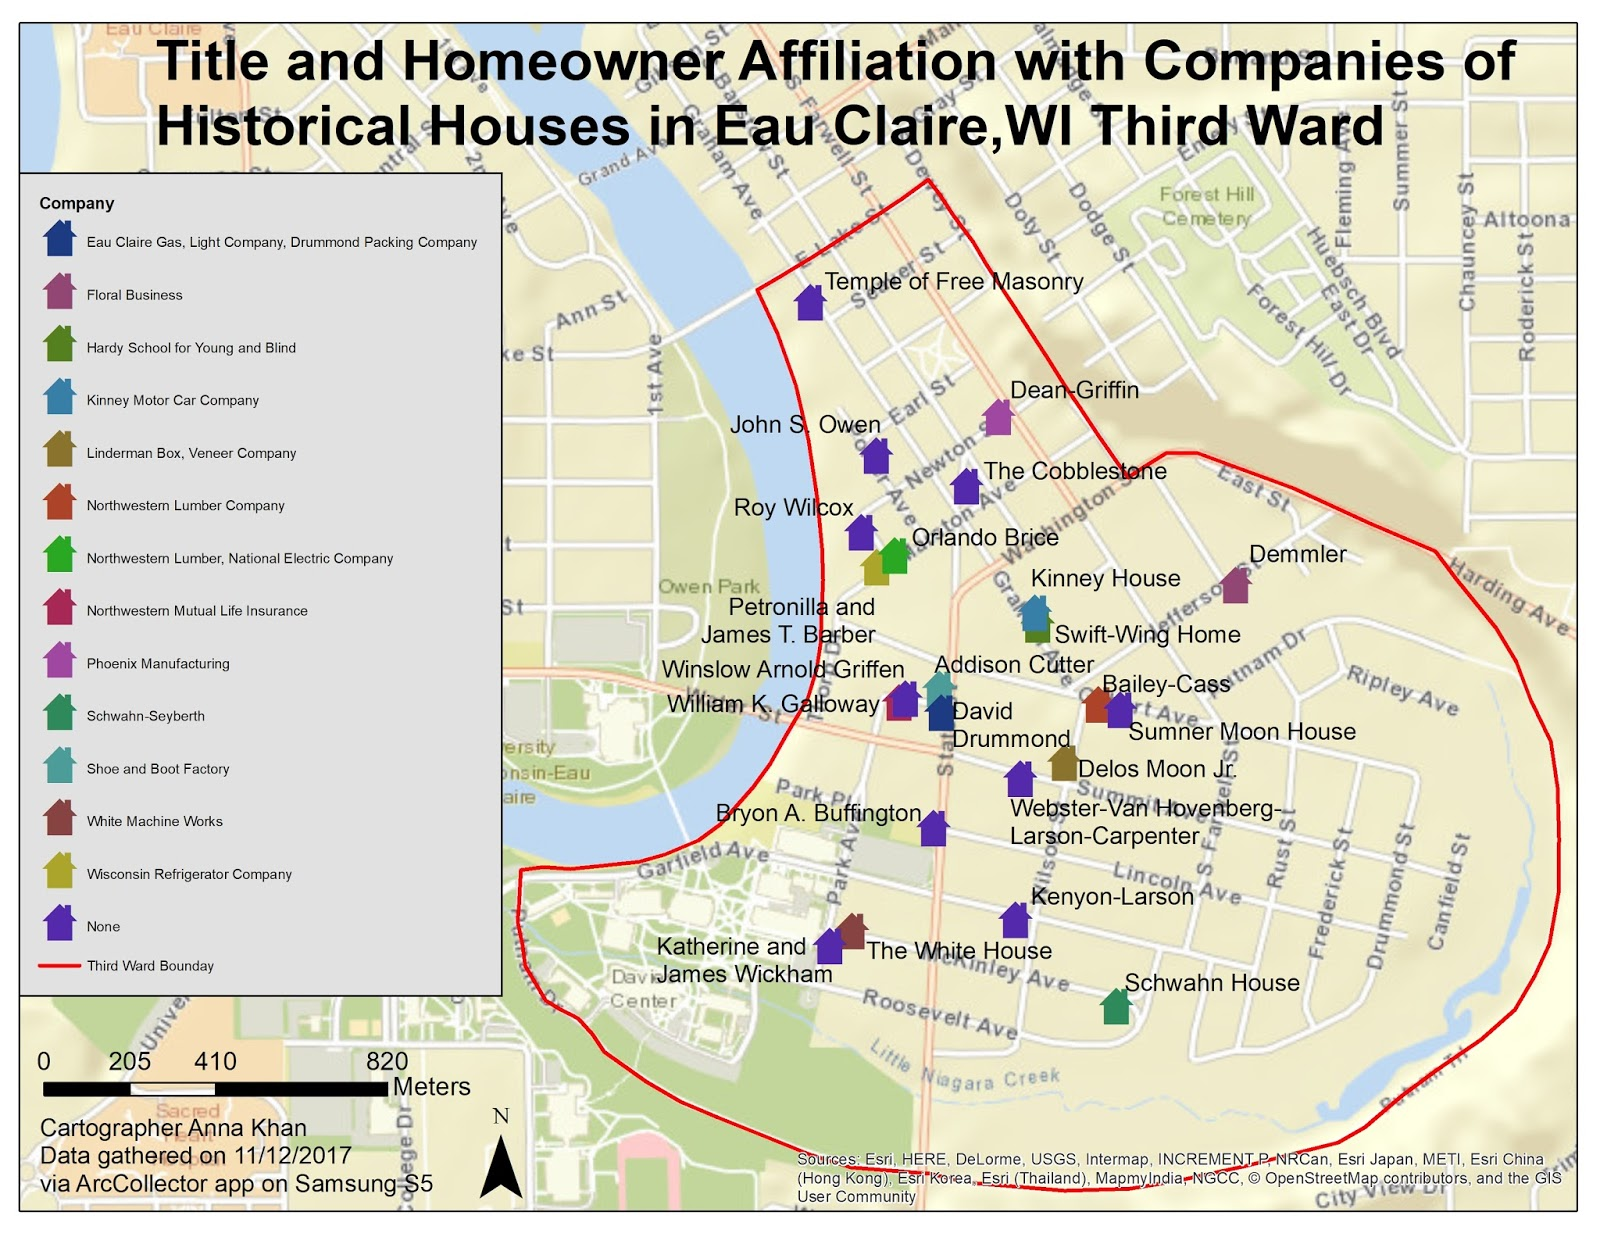 figure 9 historic house s title and homeowner affiliation w companies